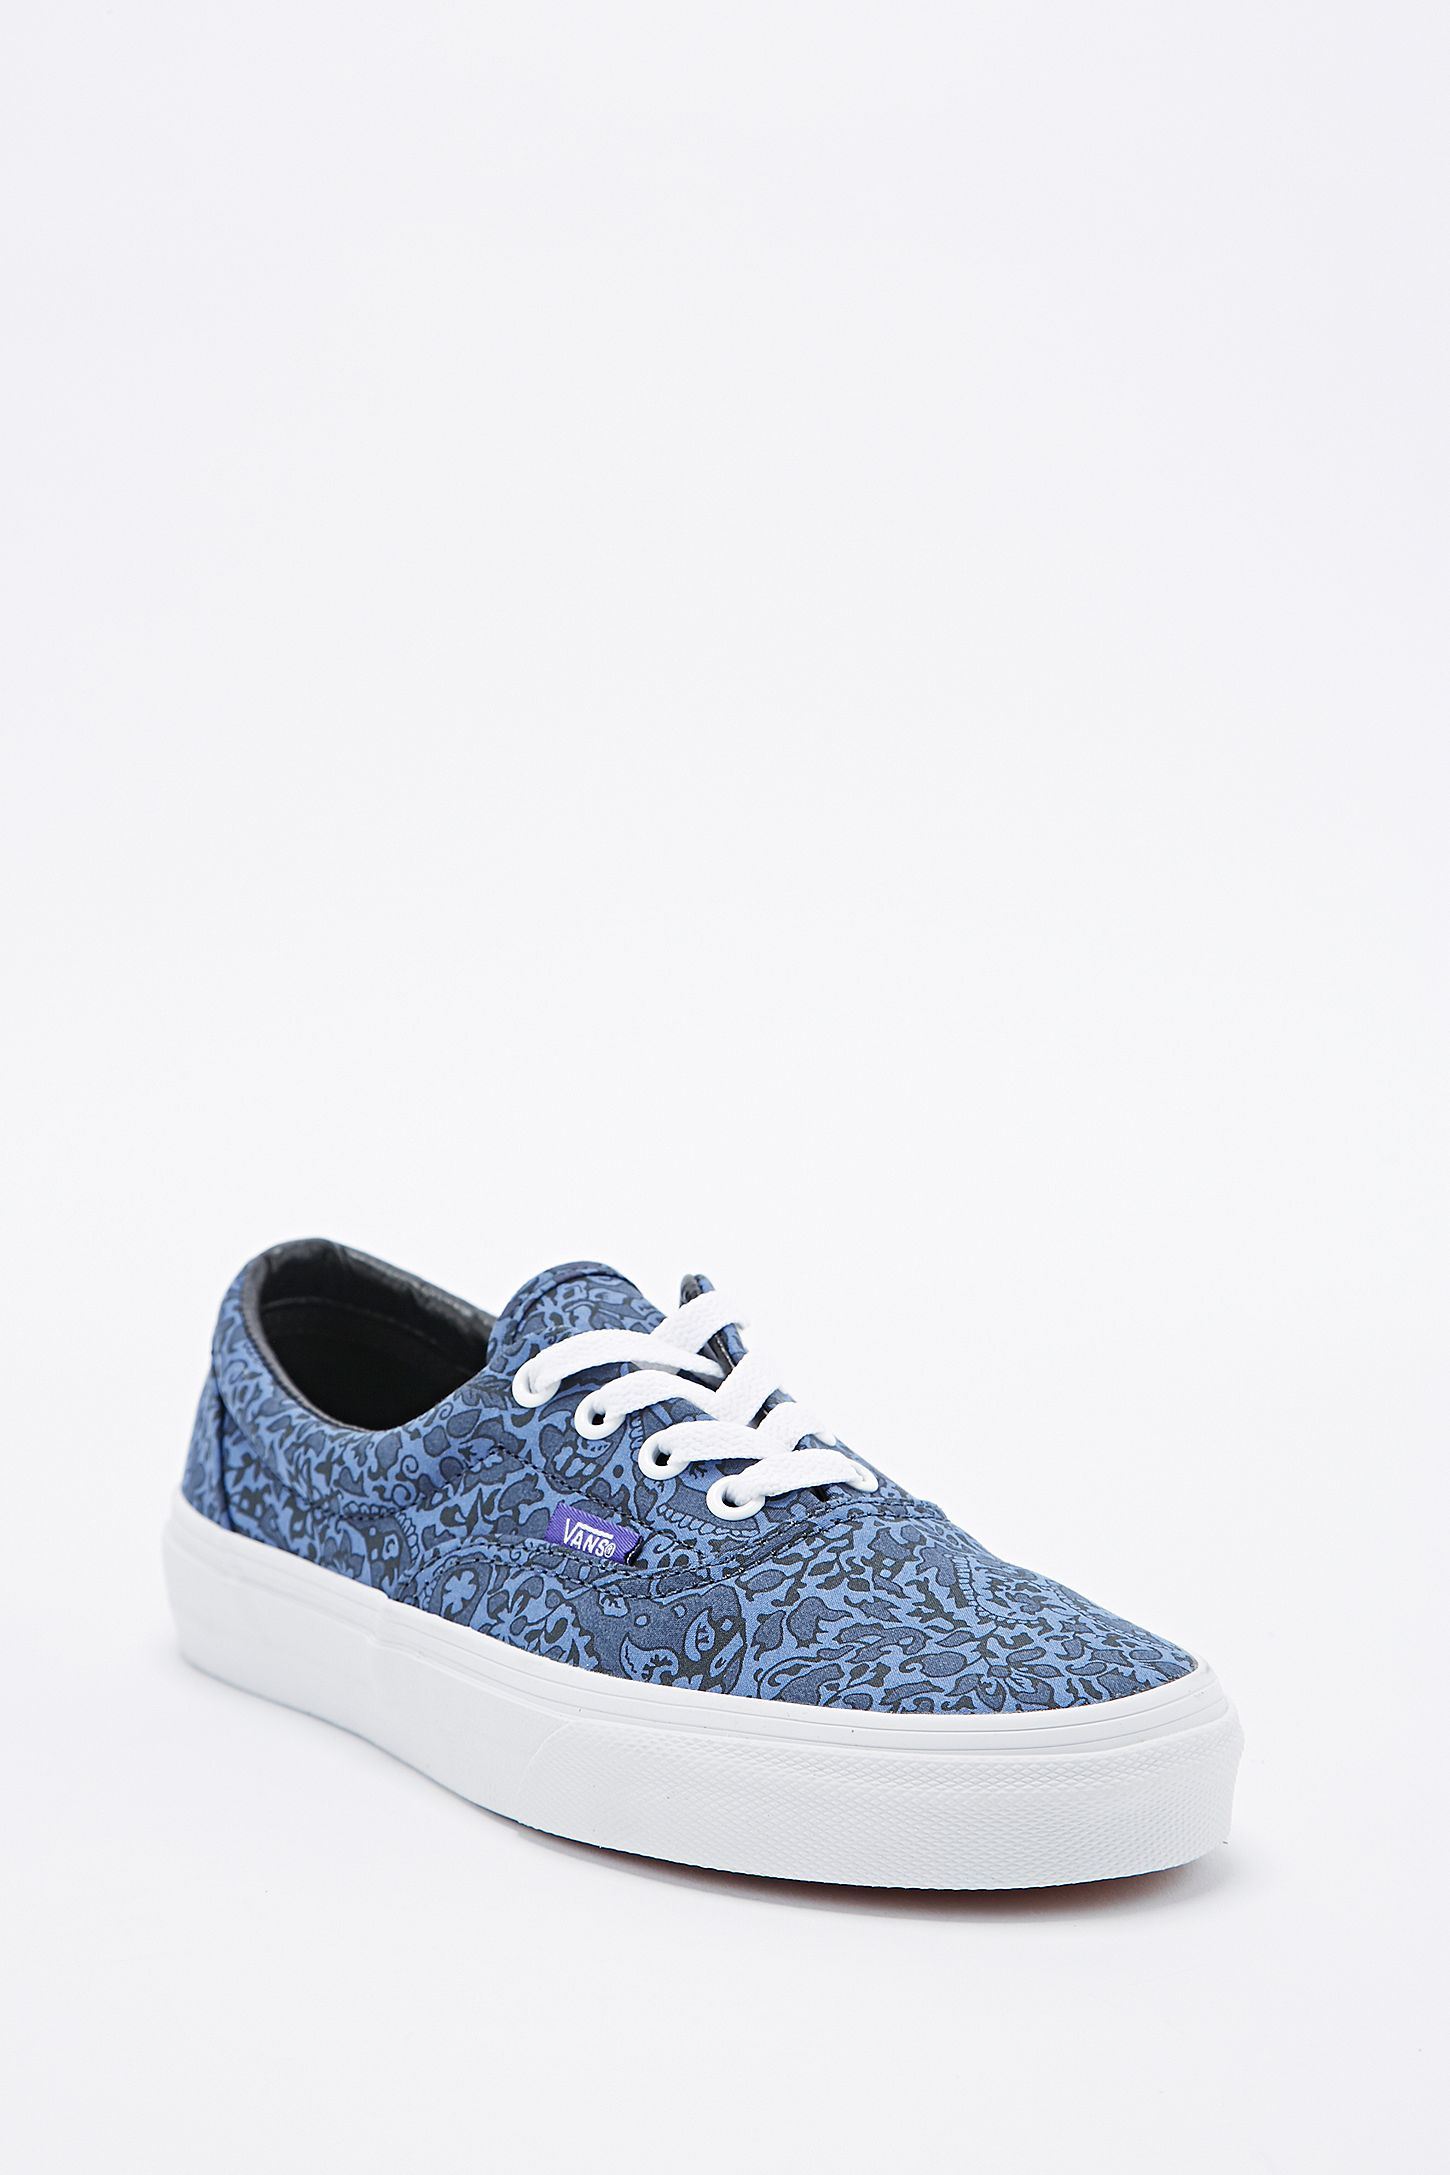 06fb7e748bd57b Vans X Liberty Era Trainers in Navy Paisley